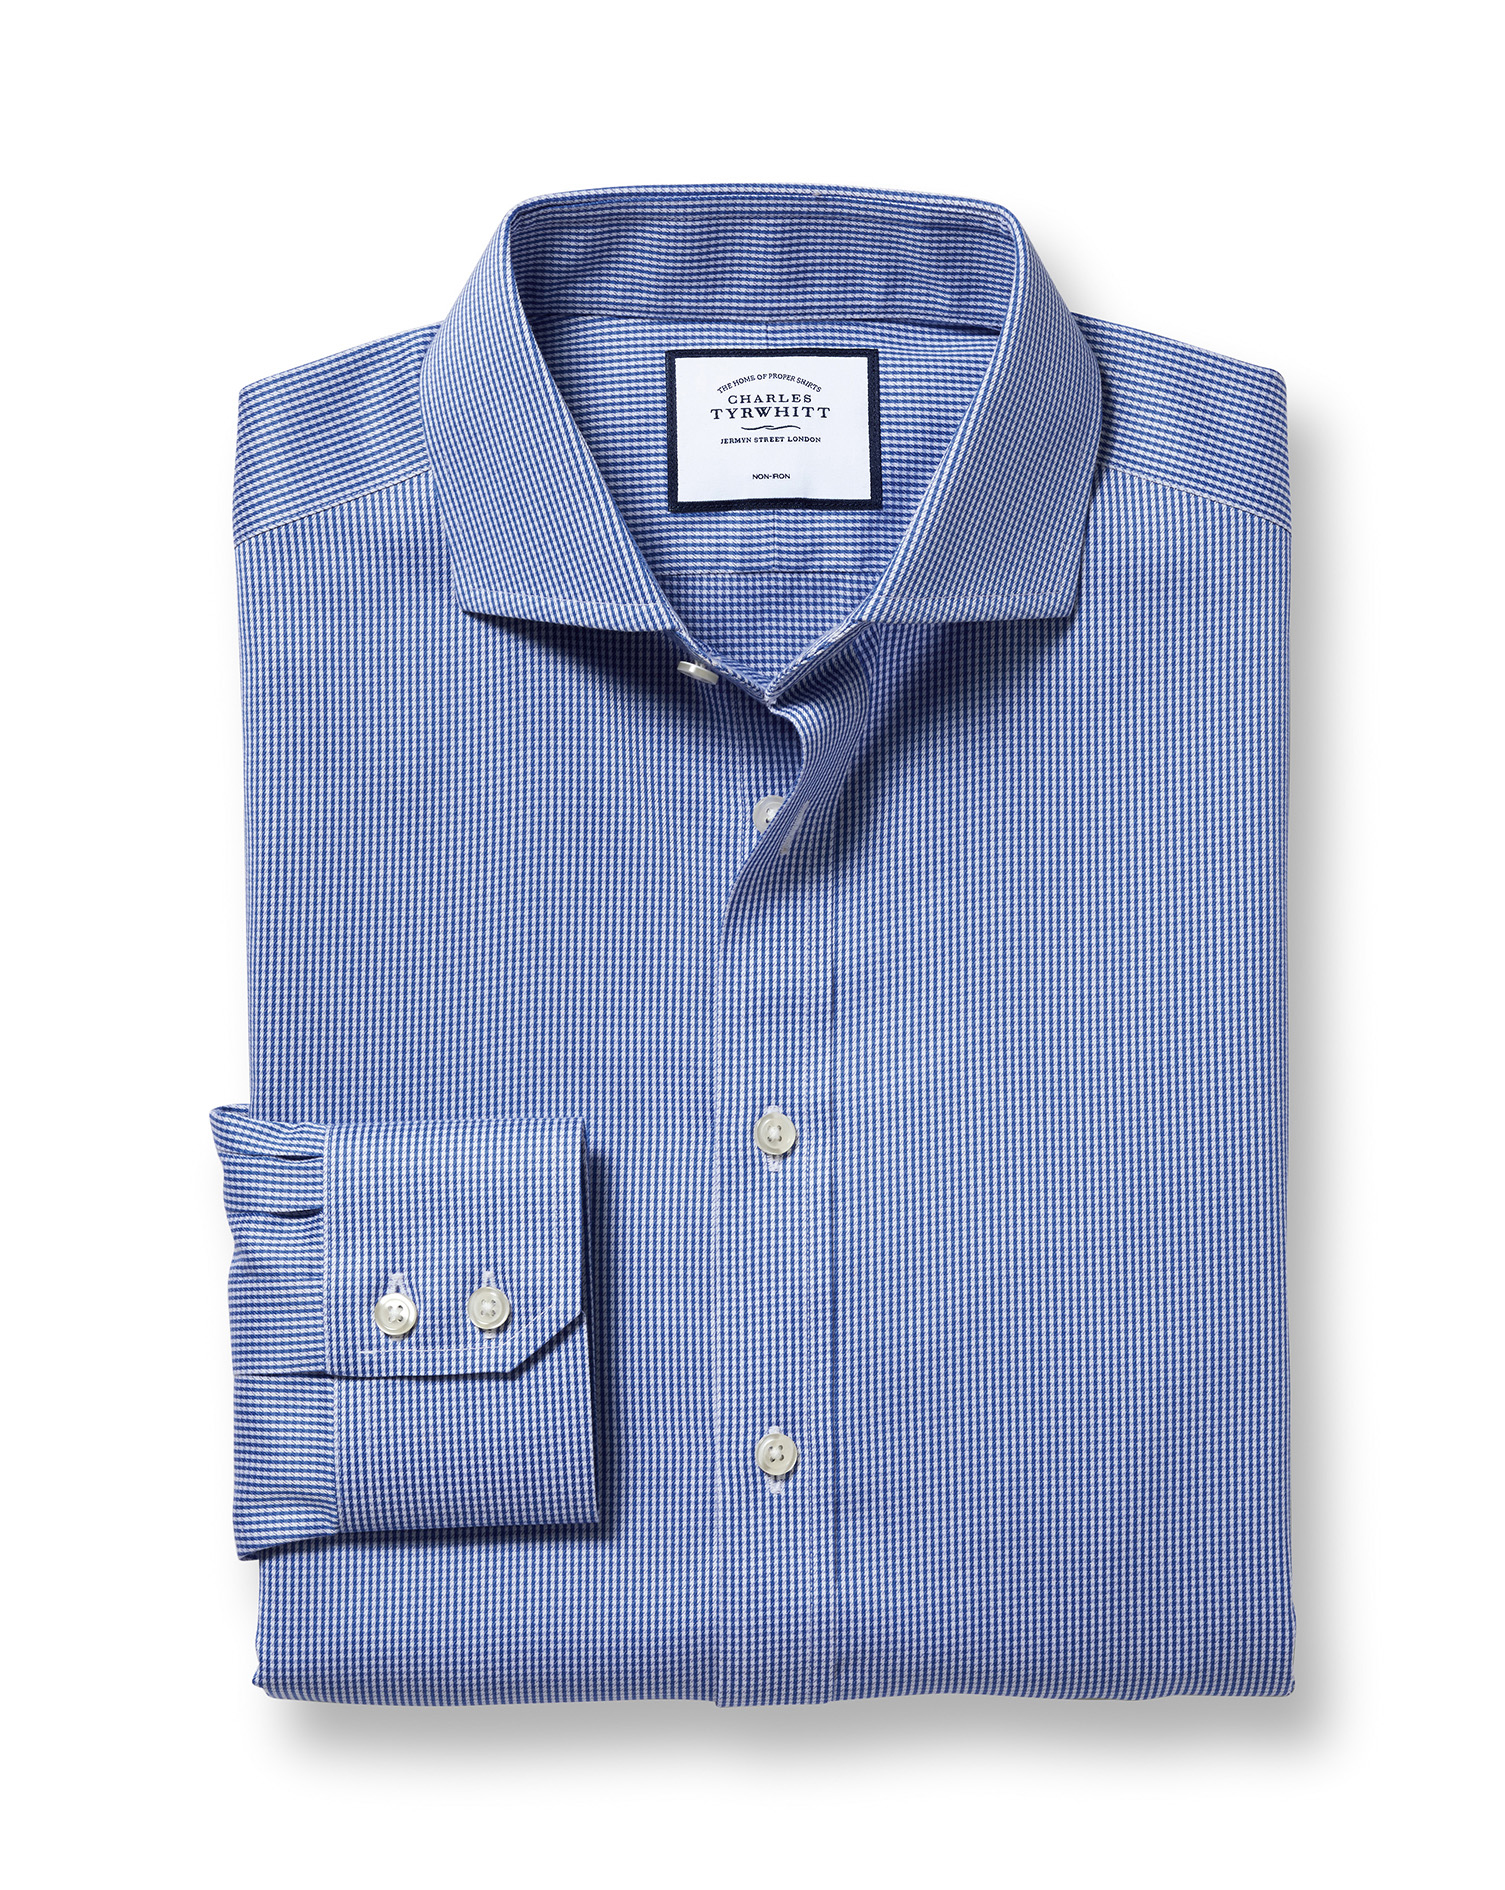 Extra Slim Fit Non-Iron Cutaway Royal Blue Puppytooth Cotton Formal Shirt Single Cuff Size 17/36 by